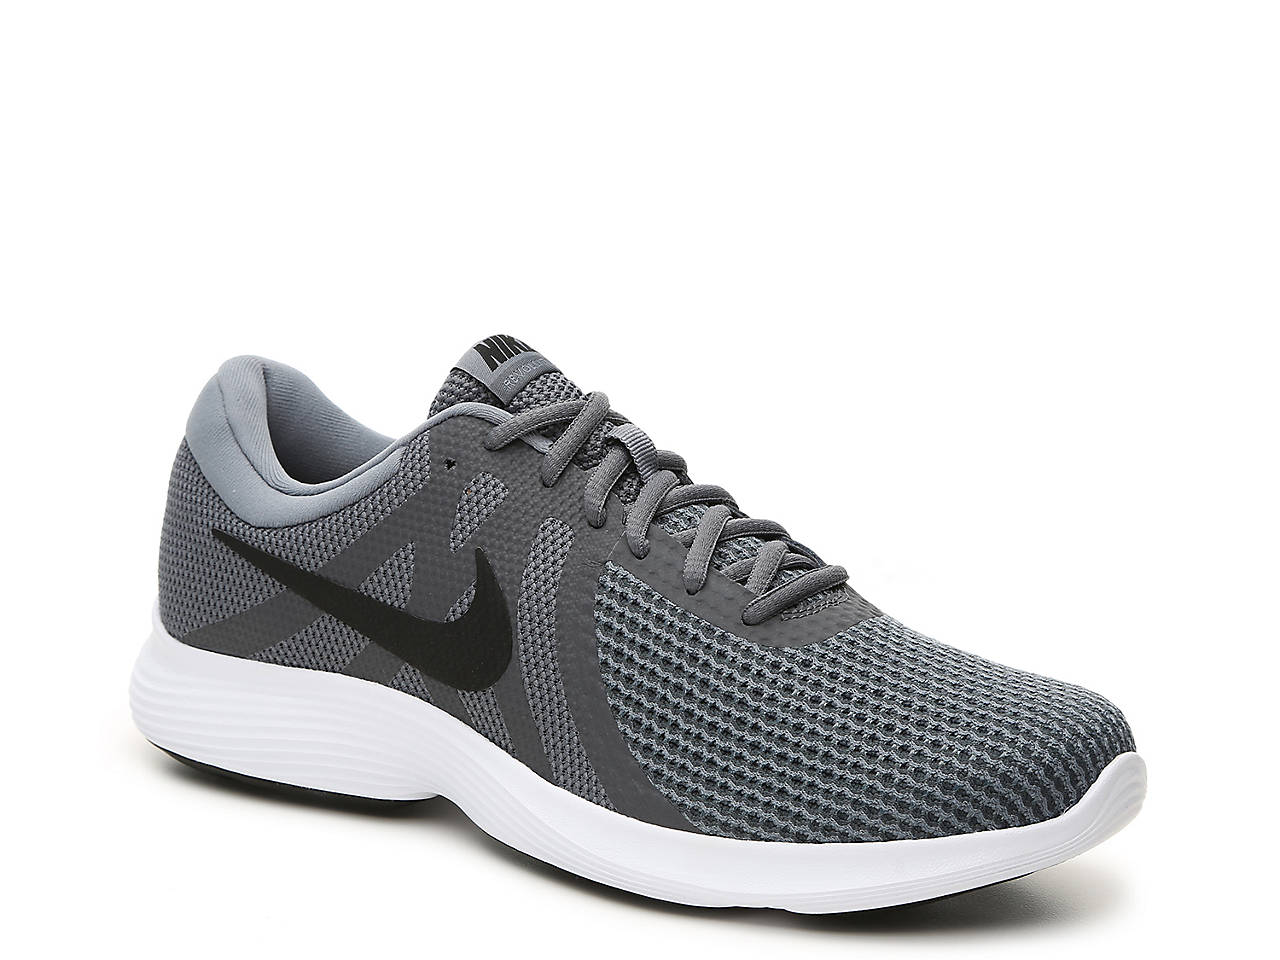 092be2e45c9a2 Nike Revolution 4 Lightweight Running Shoe - Men s Men s Shoes